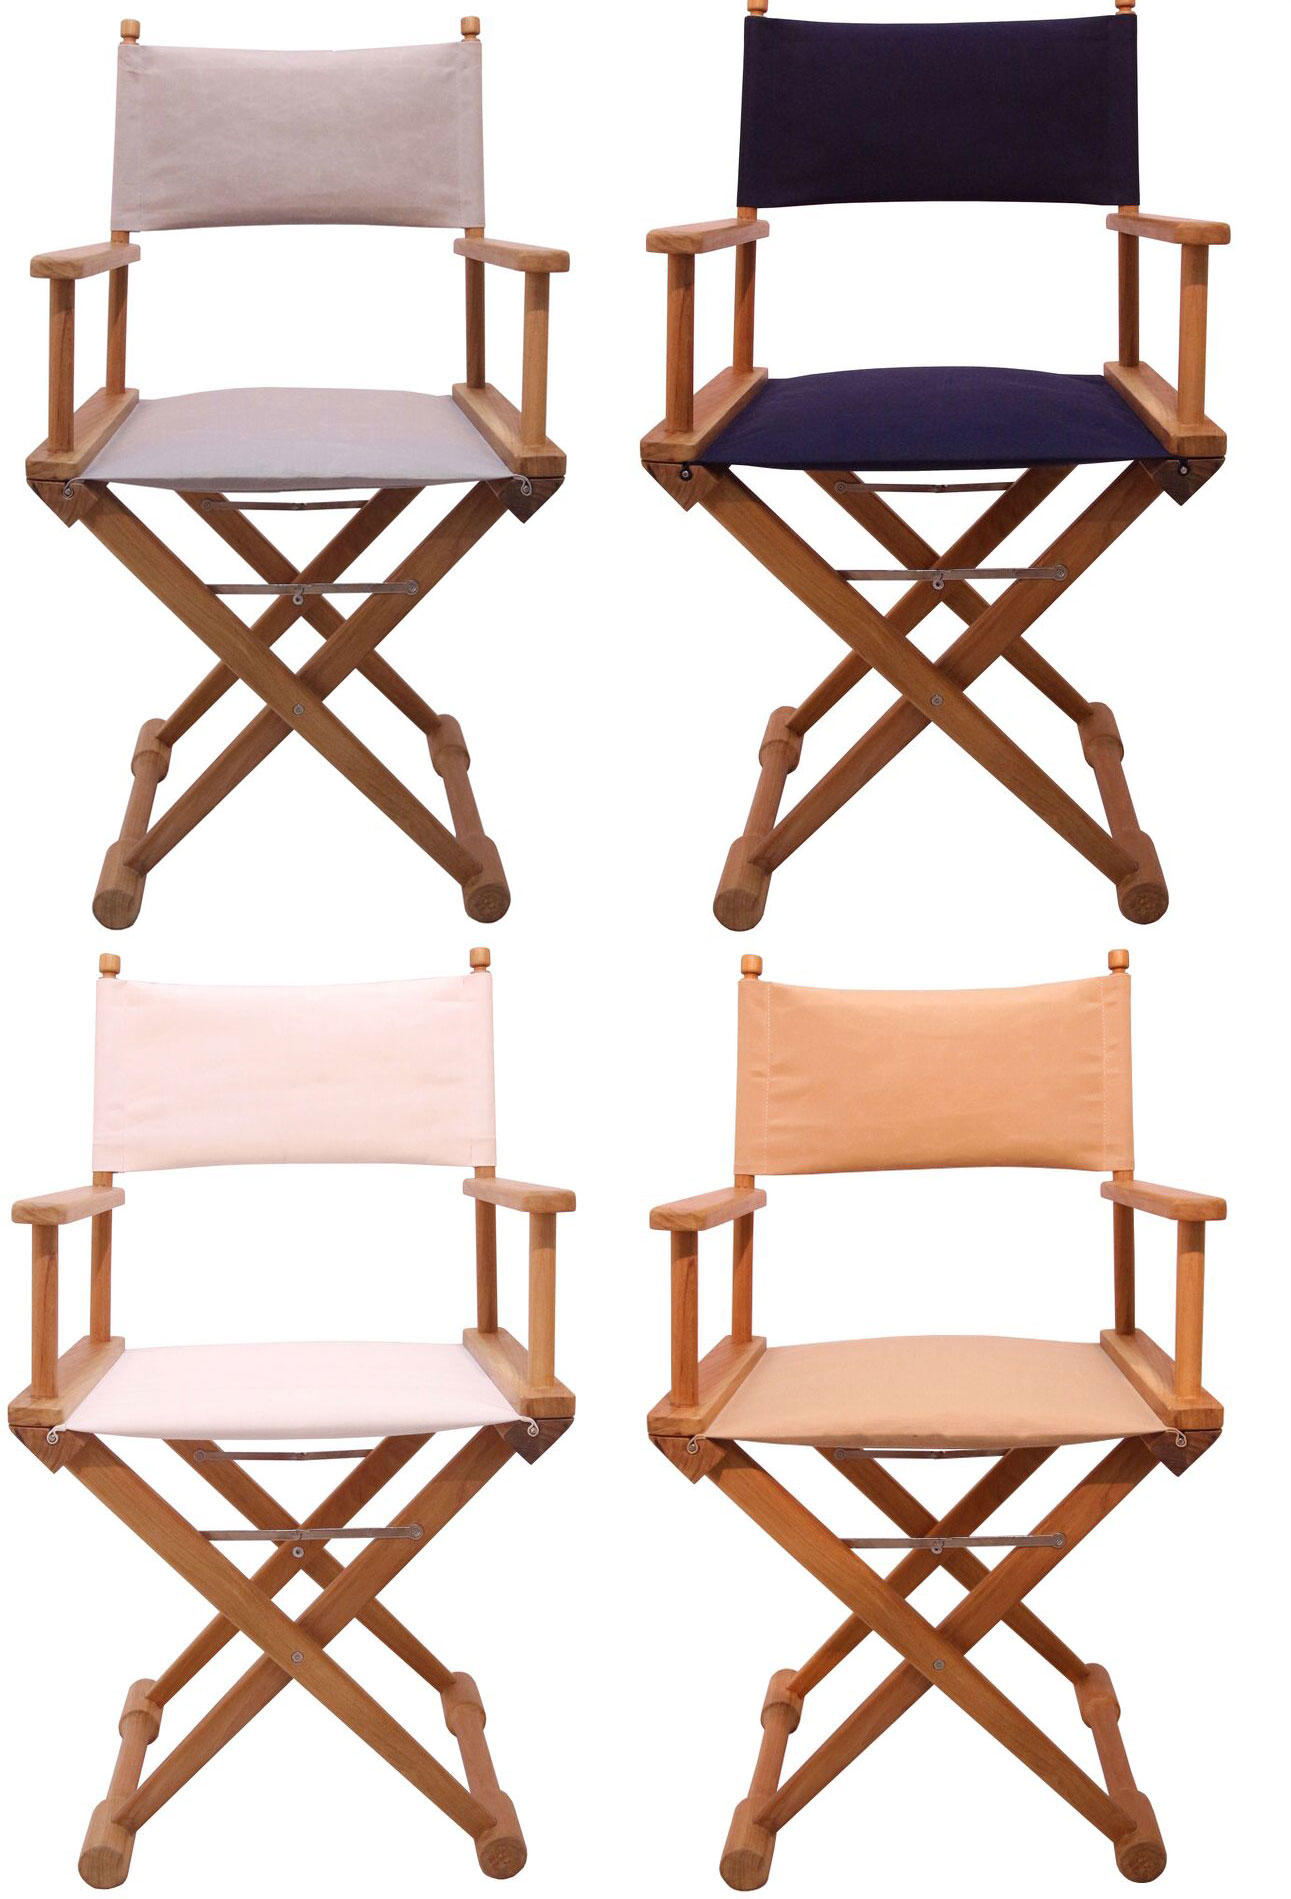 vw directors one product wests paloma south number folding chair specialist